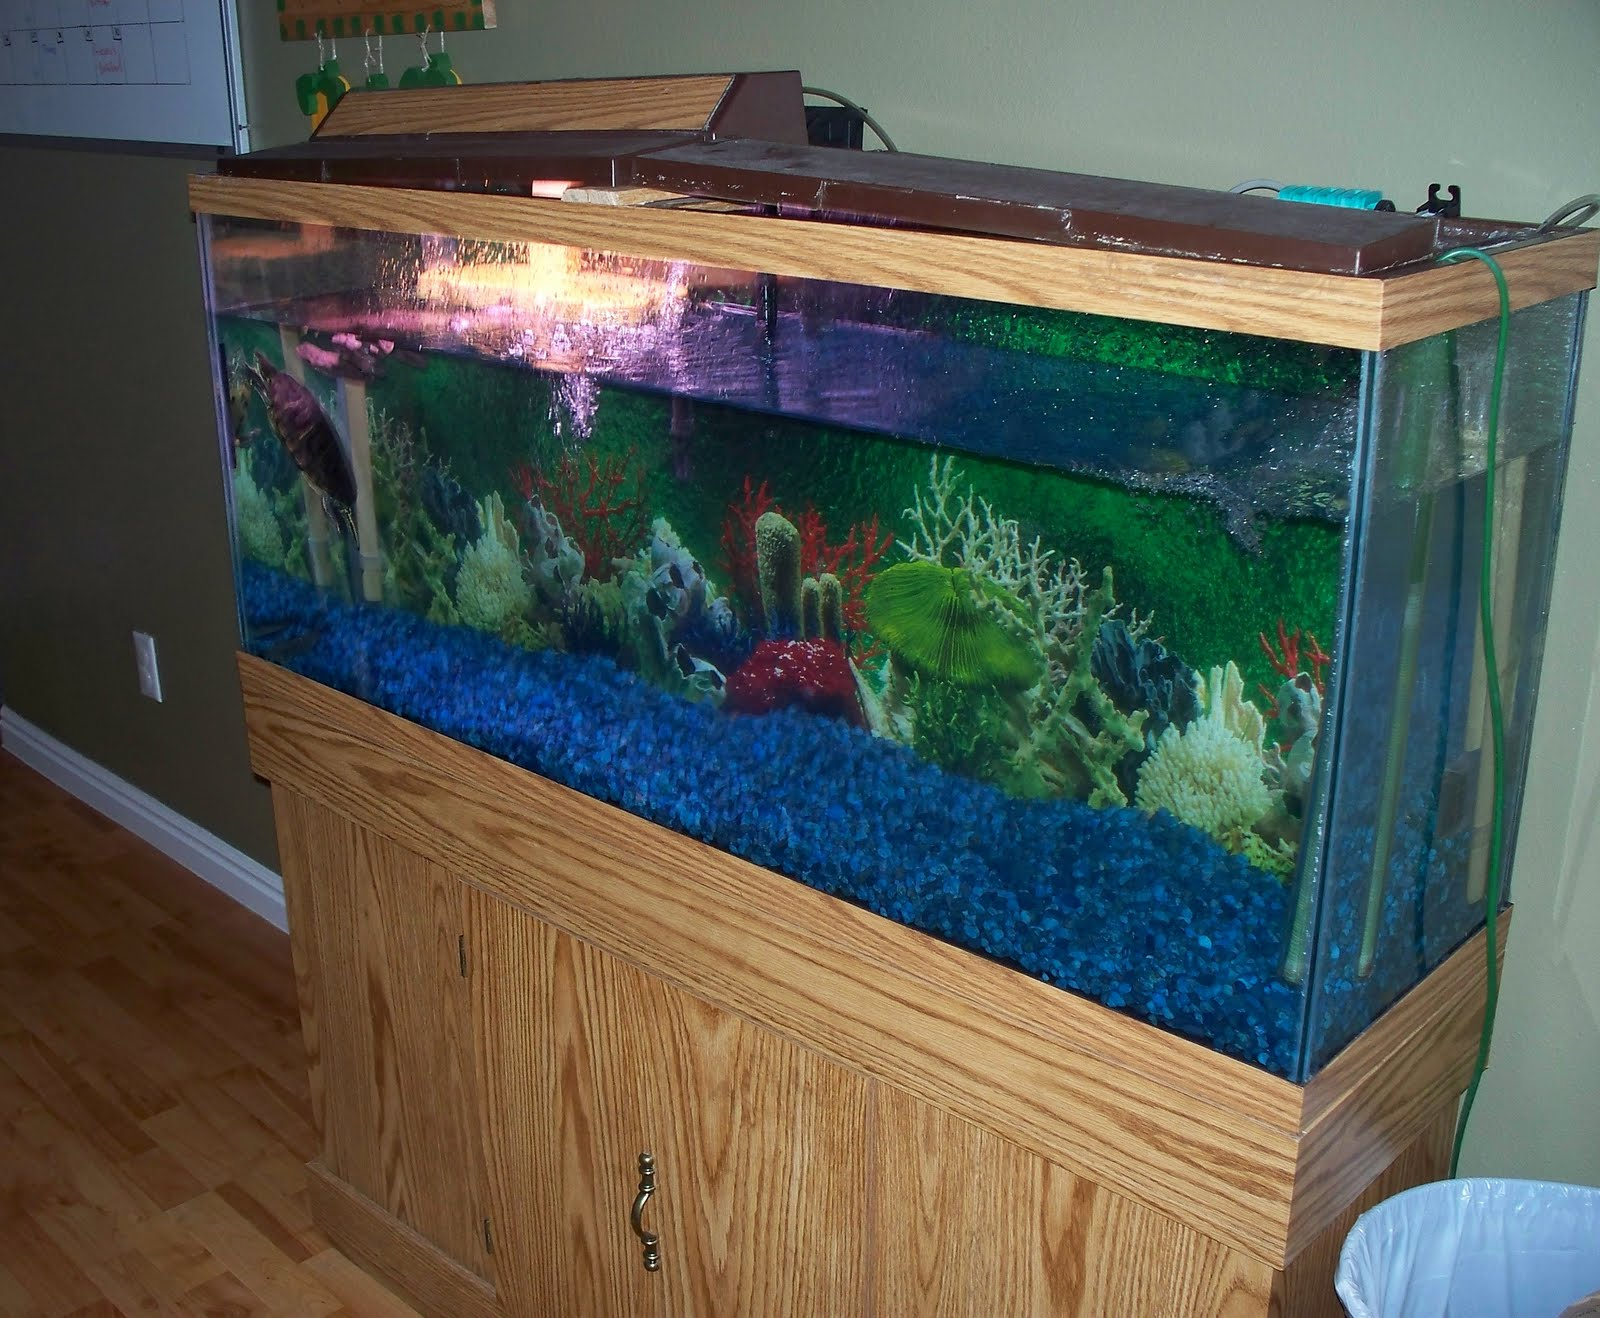 Fish aquarium for sale in karachi - 100 Gallon Fish Tank Stand For Sale 2017 Fish Tank Maintenance Fishing Gear